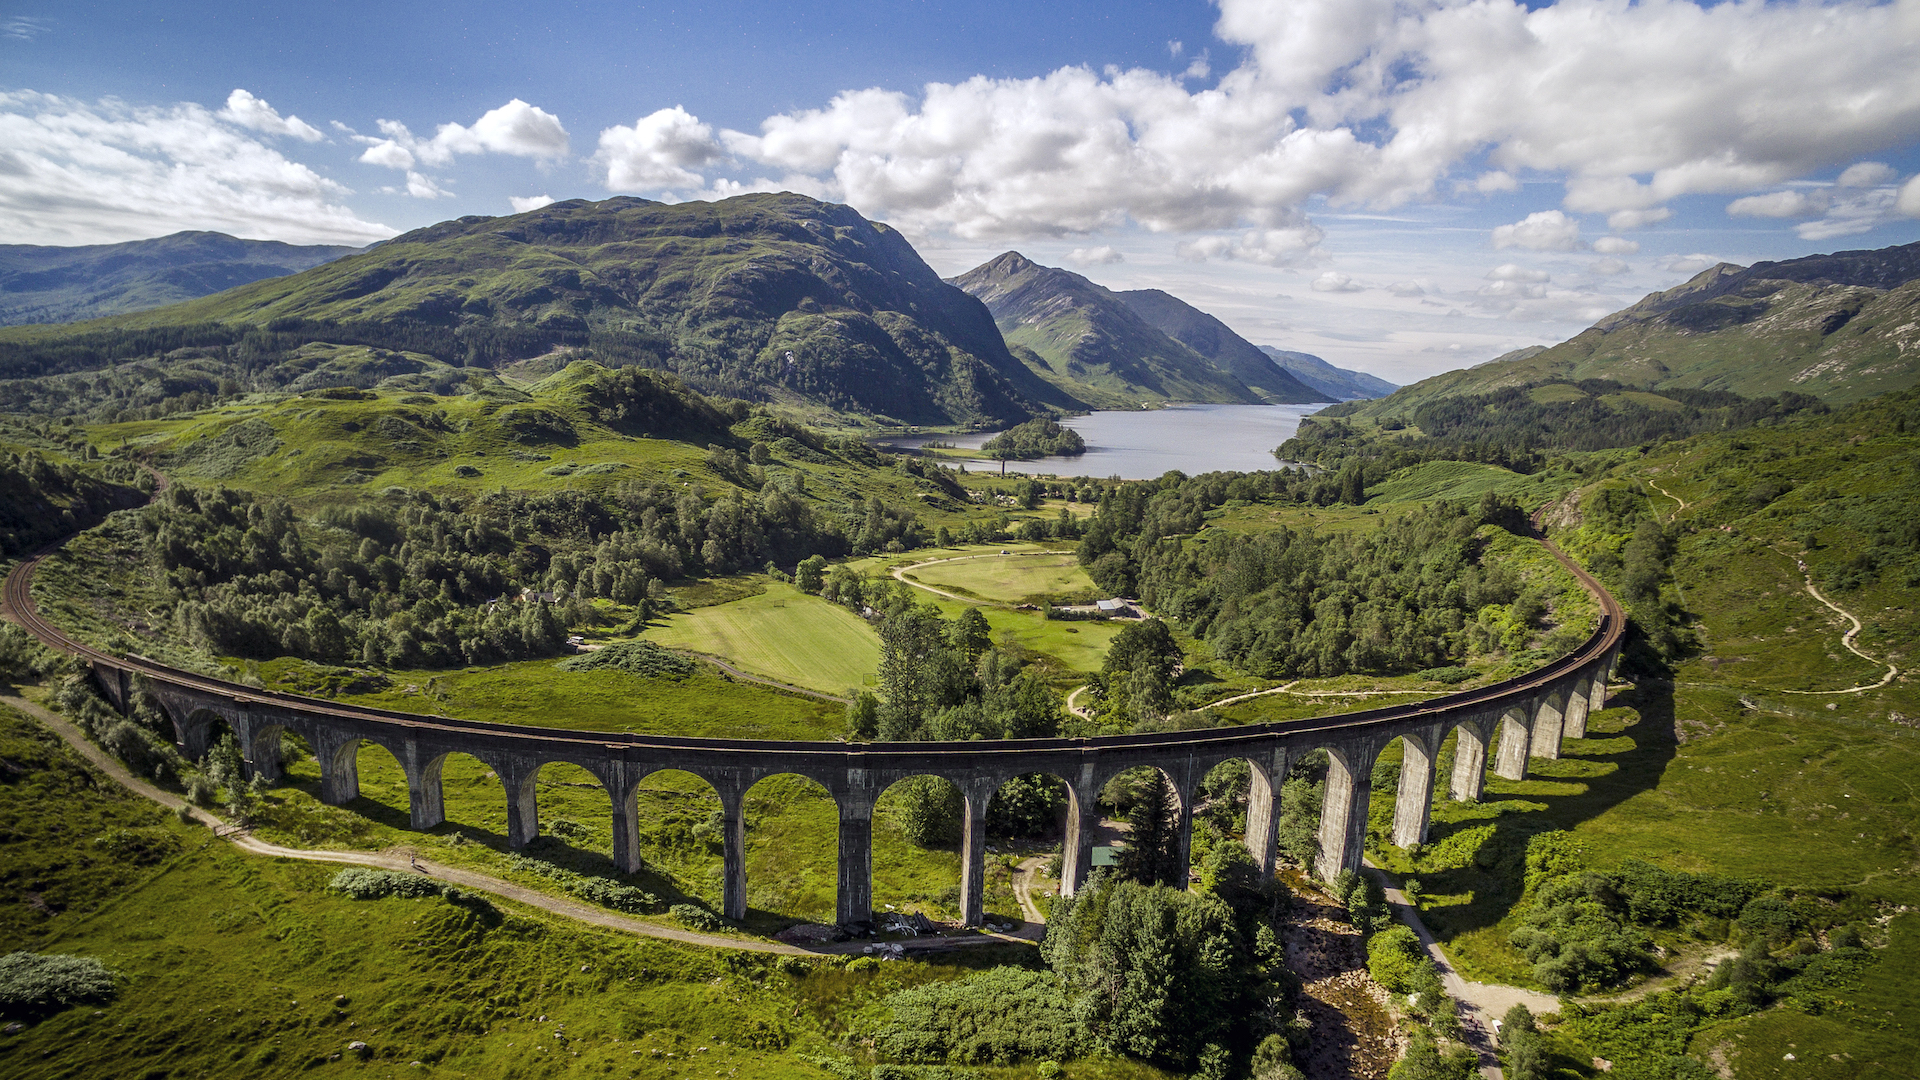 The Glenfinnan Viaduct on the West Highland Line - IMAGE CREDIT VISITSCOTLAND